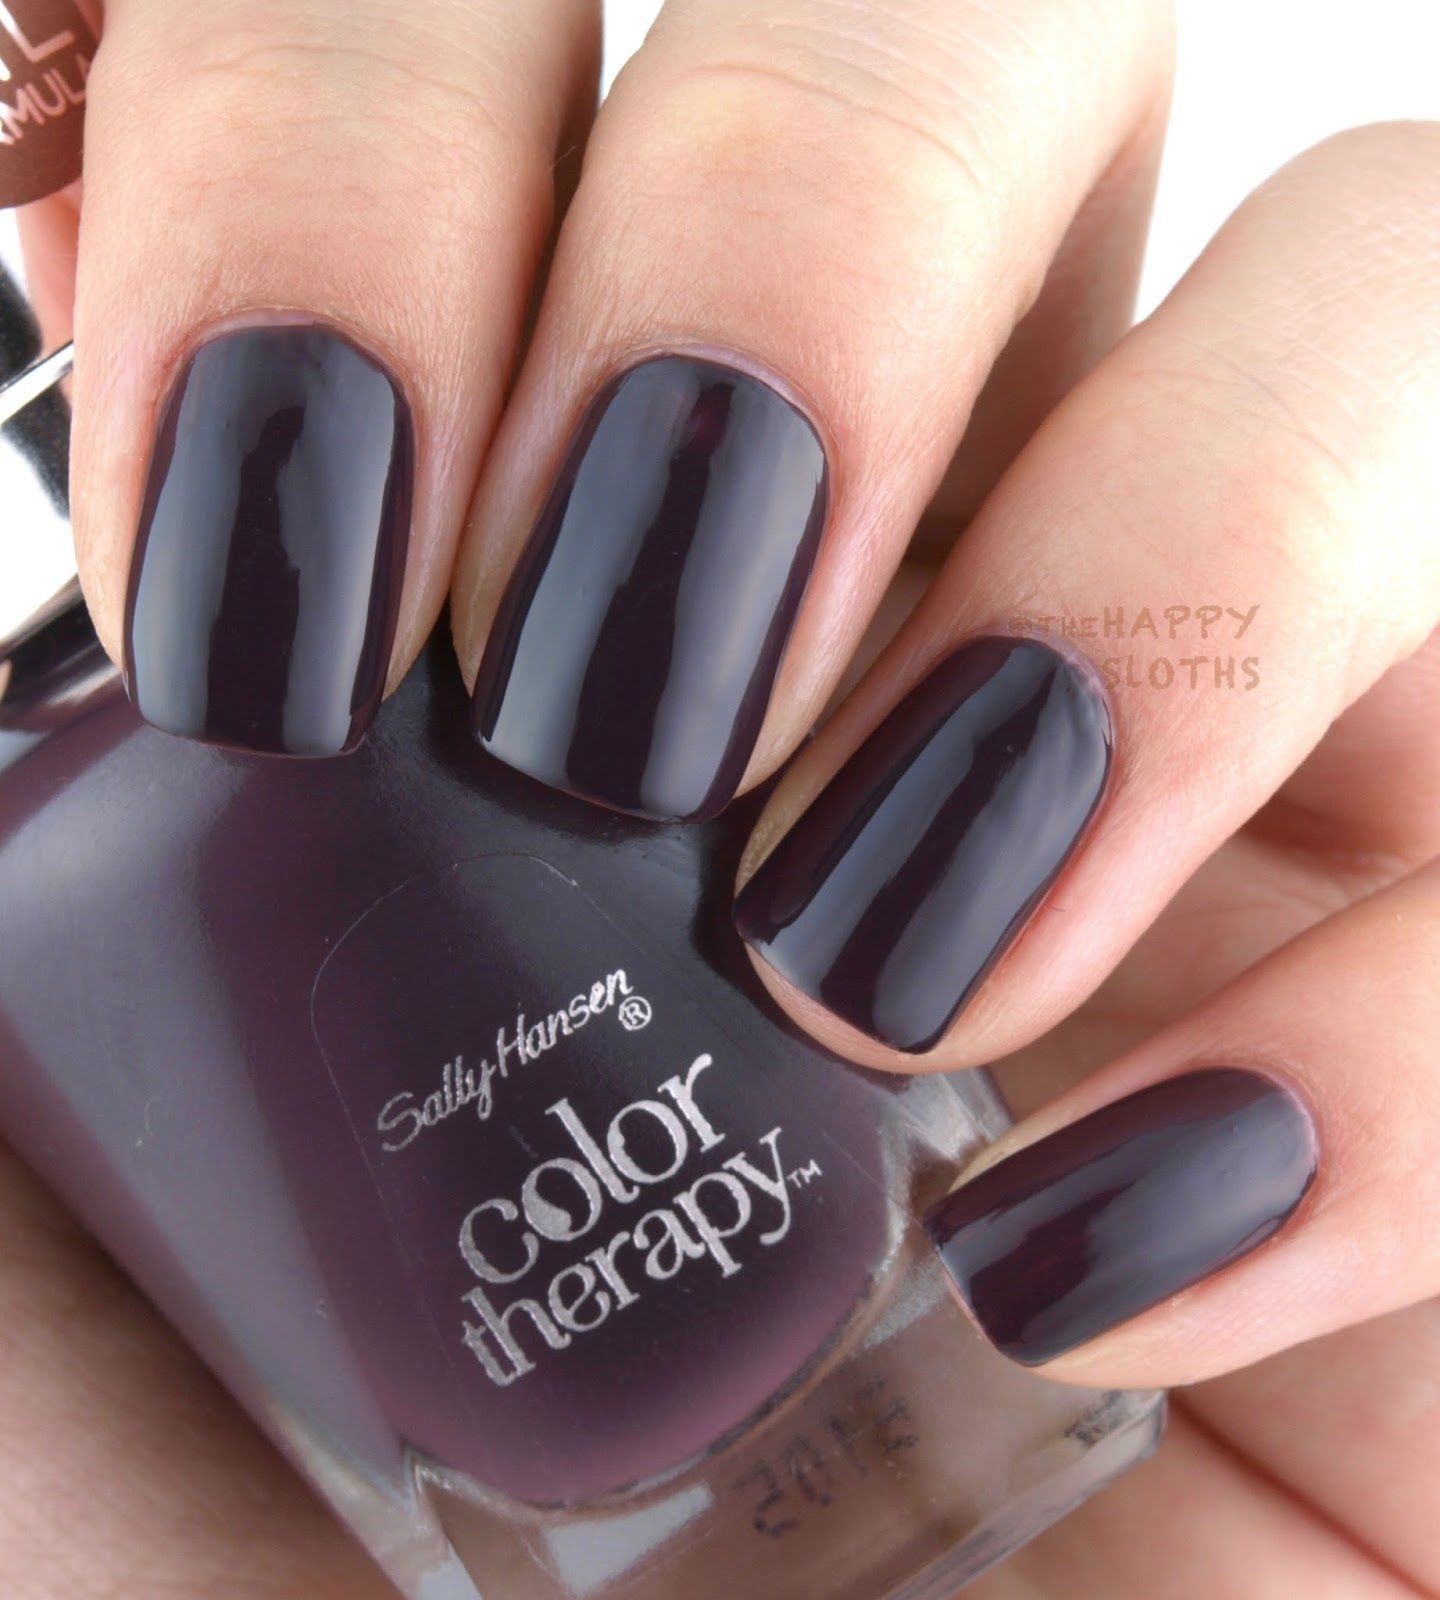 Sally Hansen Color Therapy Nail Polish: Review and Swatches | Sally ...